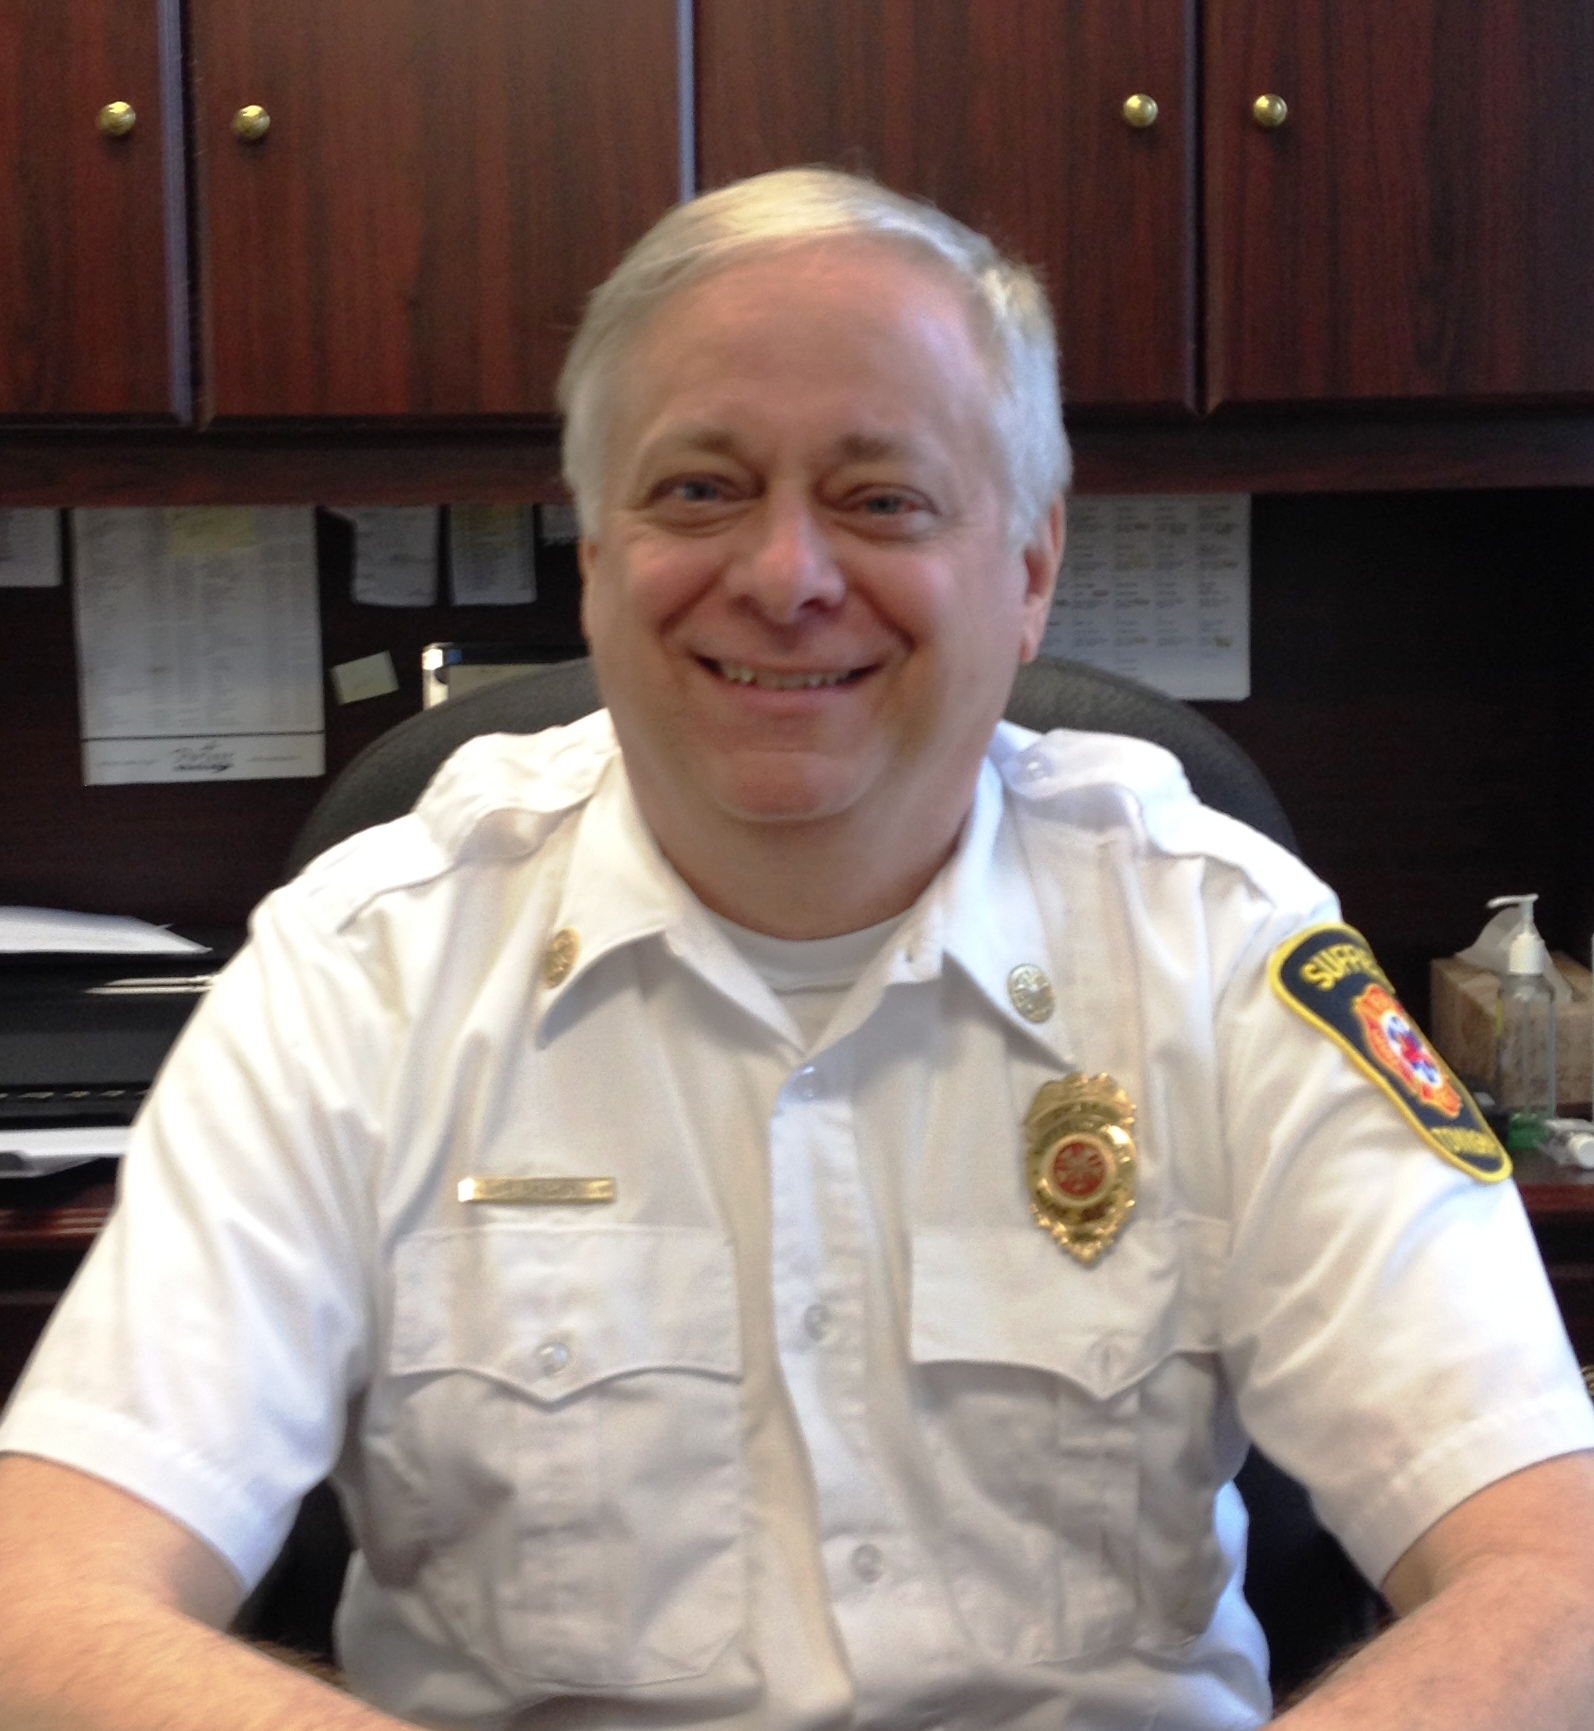 Chief Bob Rasnick 04 07 2015